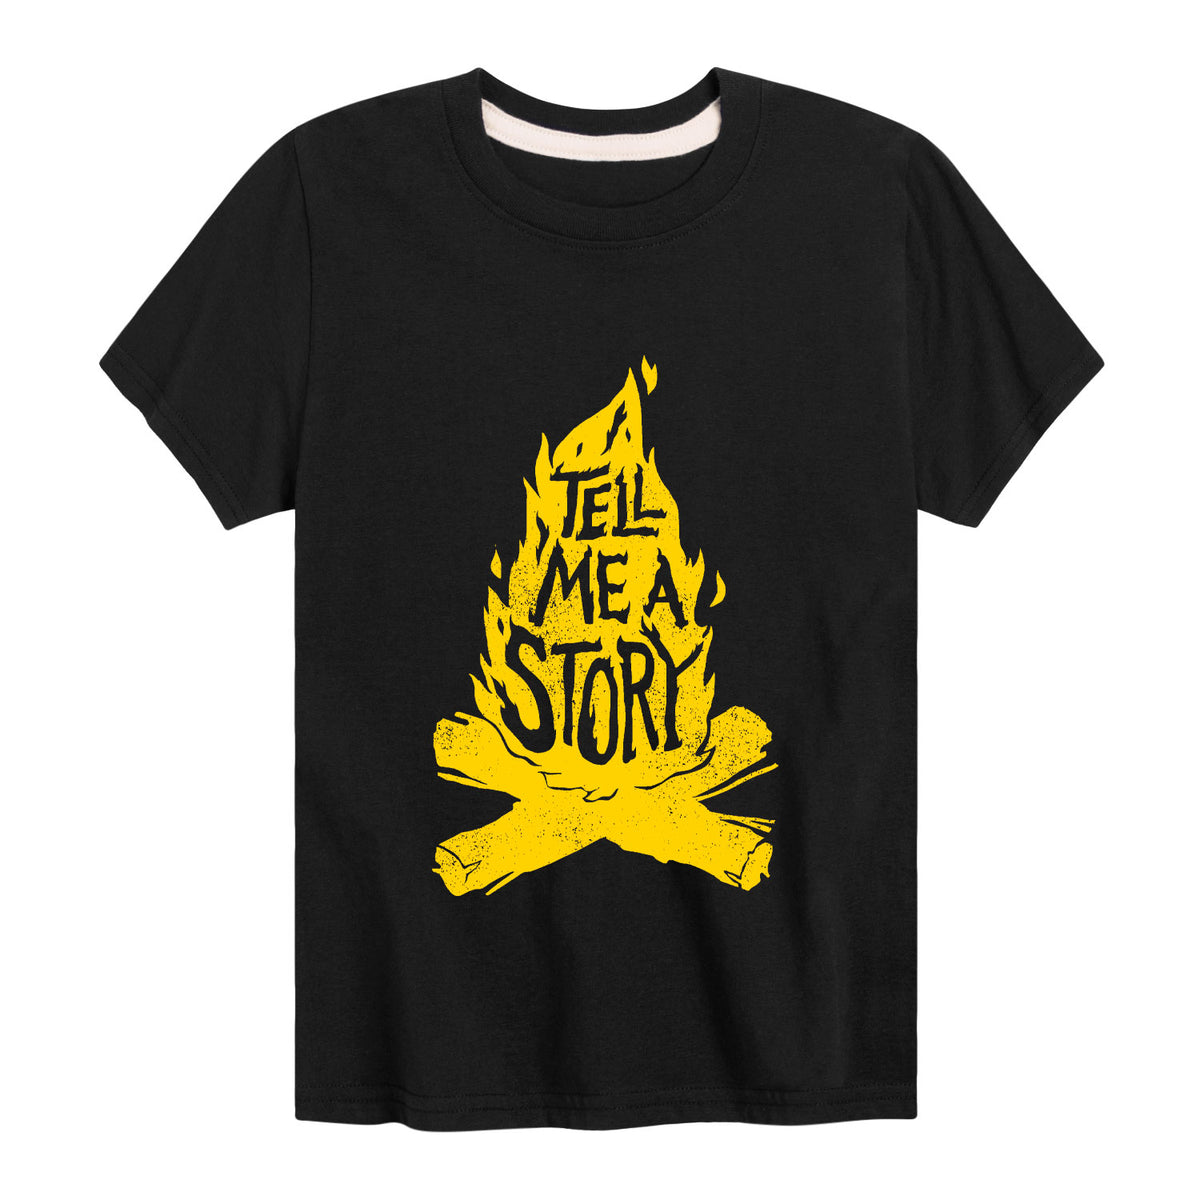 Tell Me A Story - Youth & Toddler Short Sleeve T-Shirt